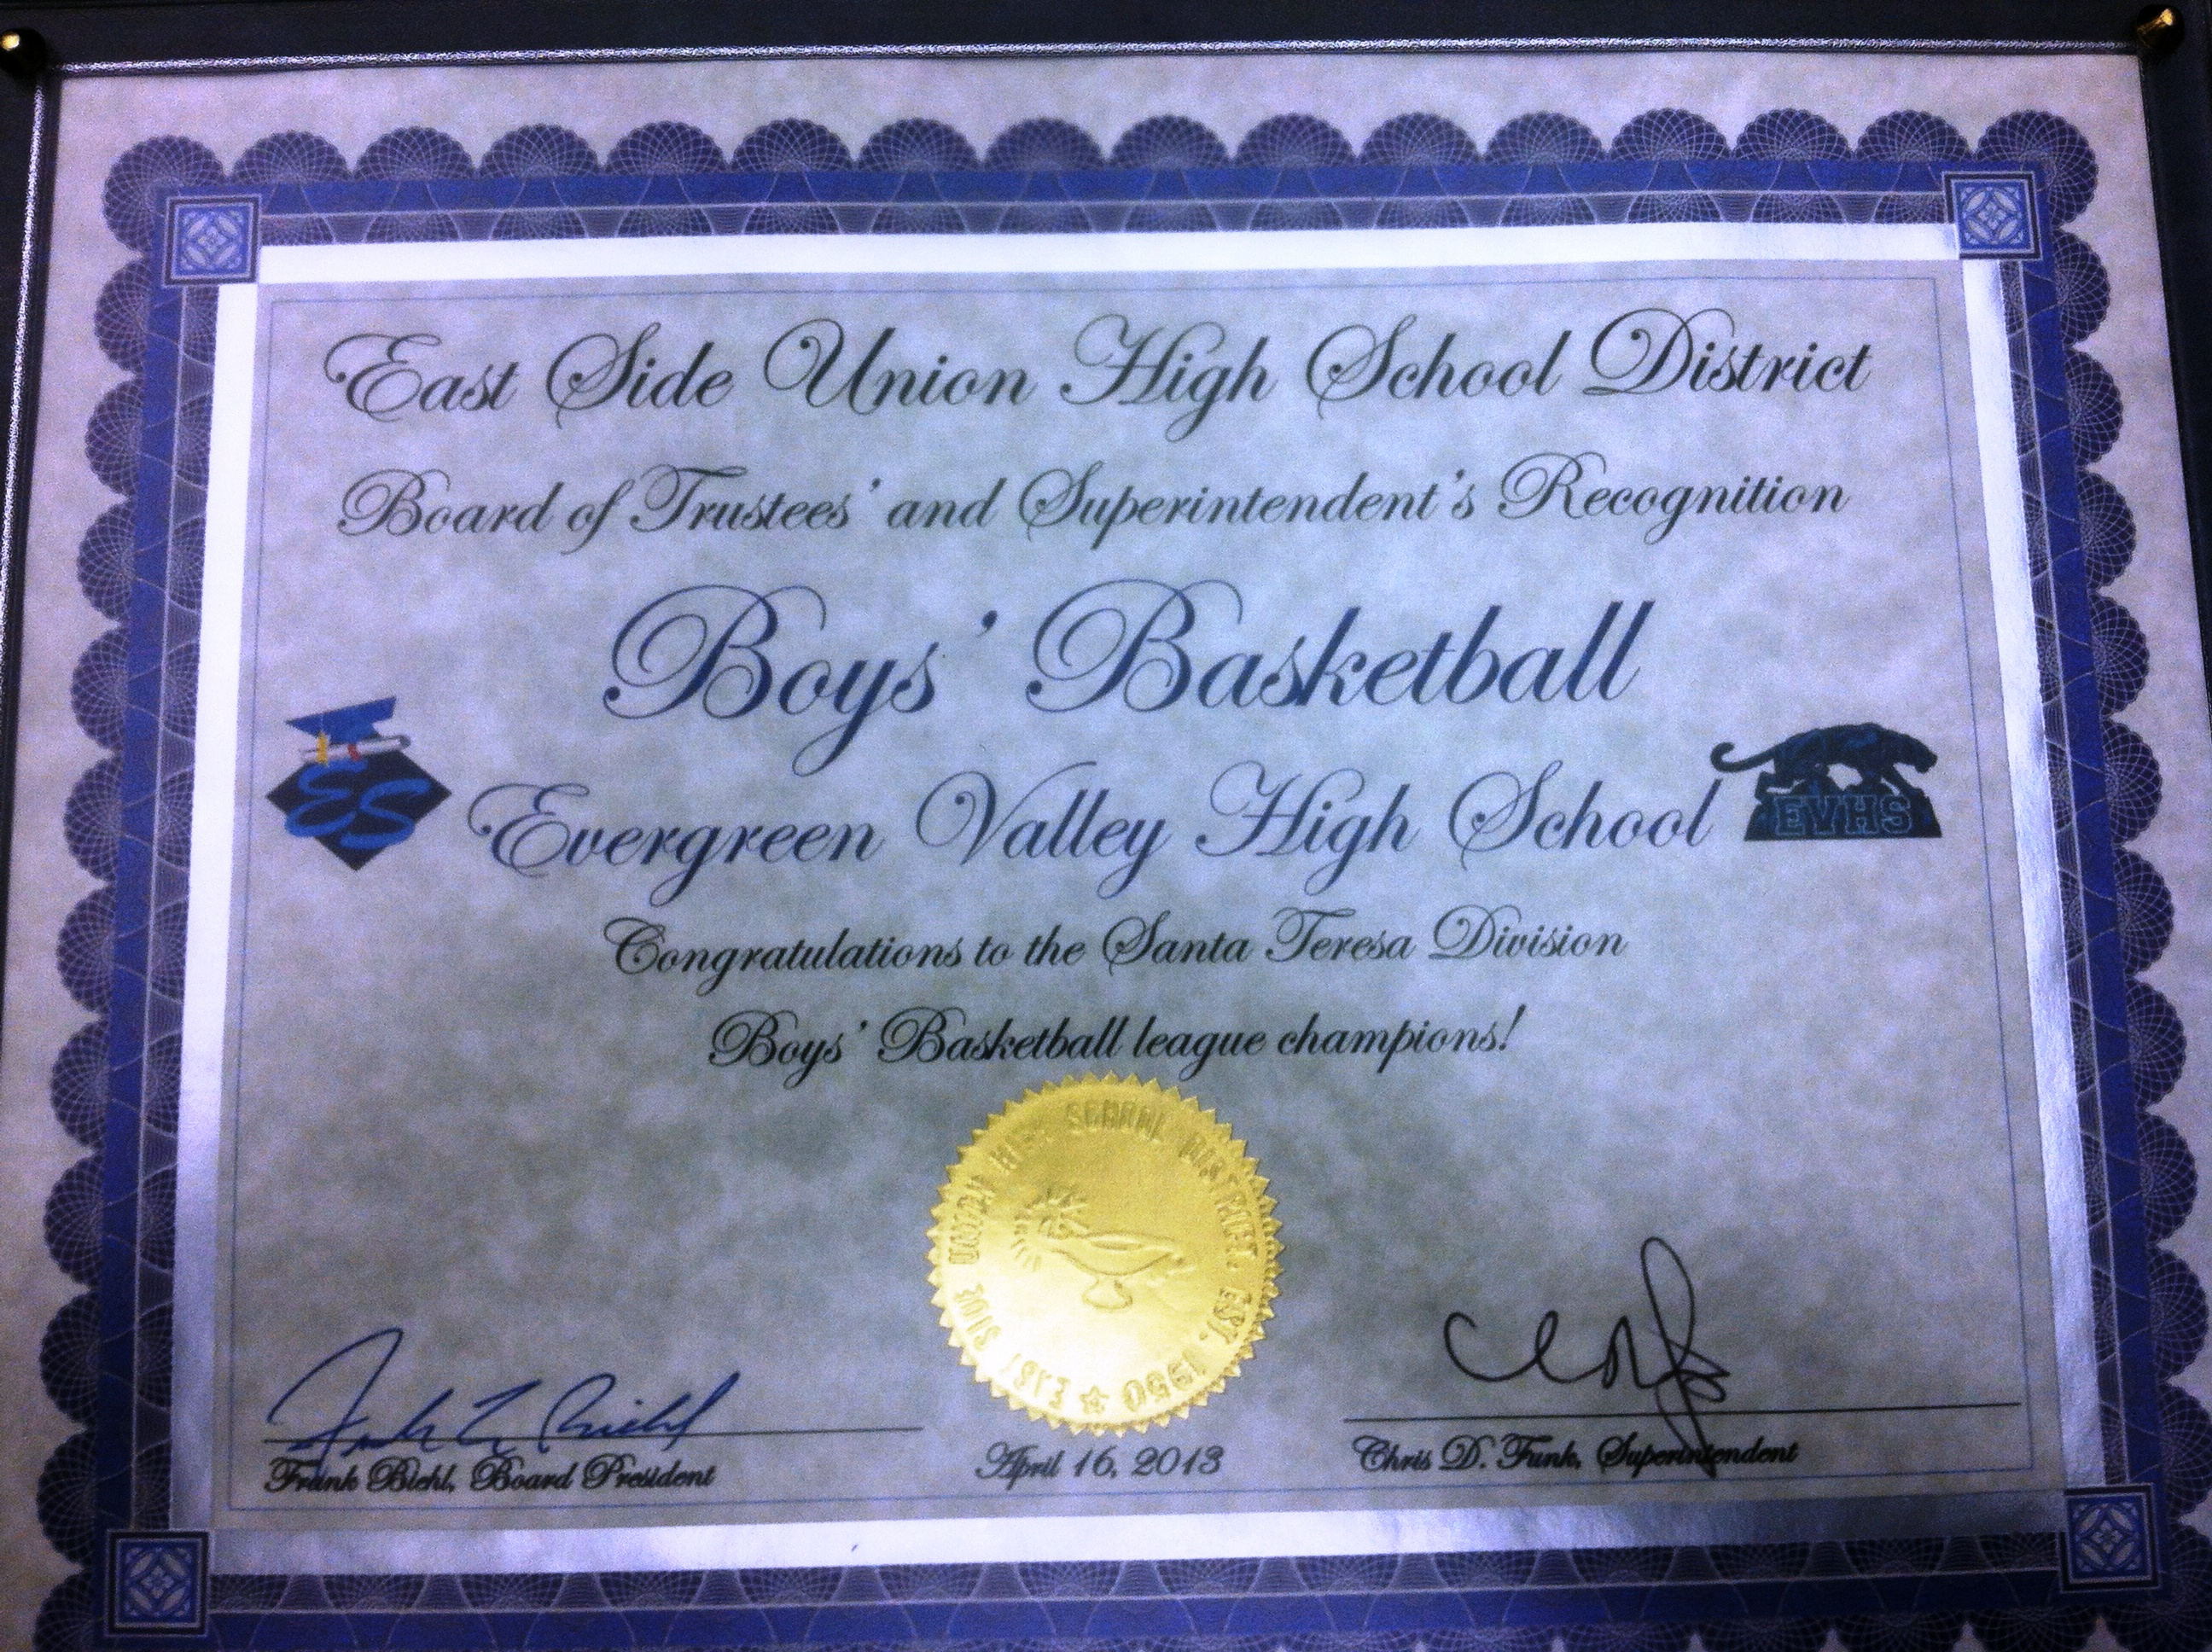 Boys Basketball Recognized by ESUHSD Board Members!